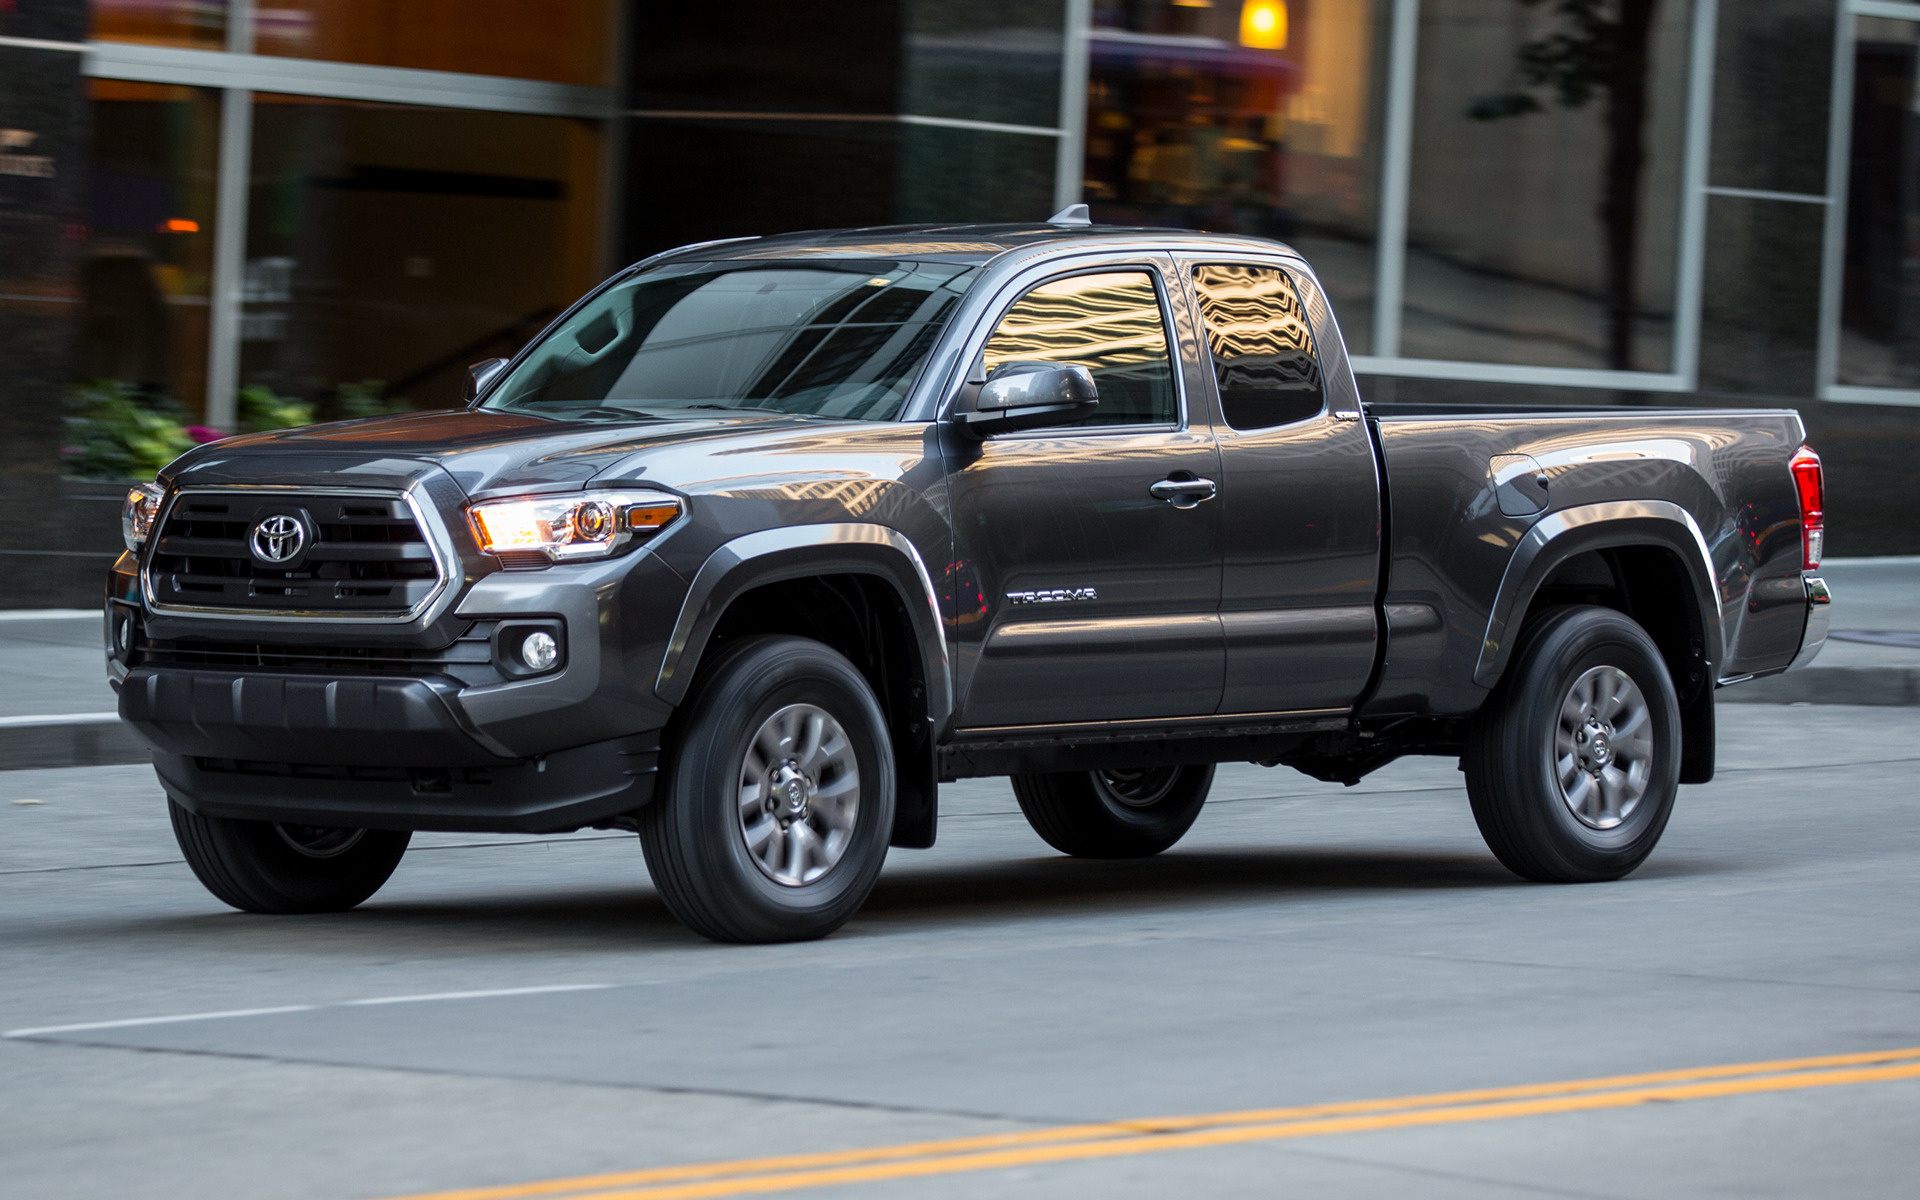 2016 Toyota Tacoma Access Cab >> 2016 Toyota Tacoma SR5 Access Cab - Wallpapers and HD Images | Car Pixel